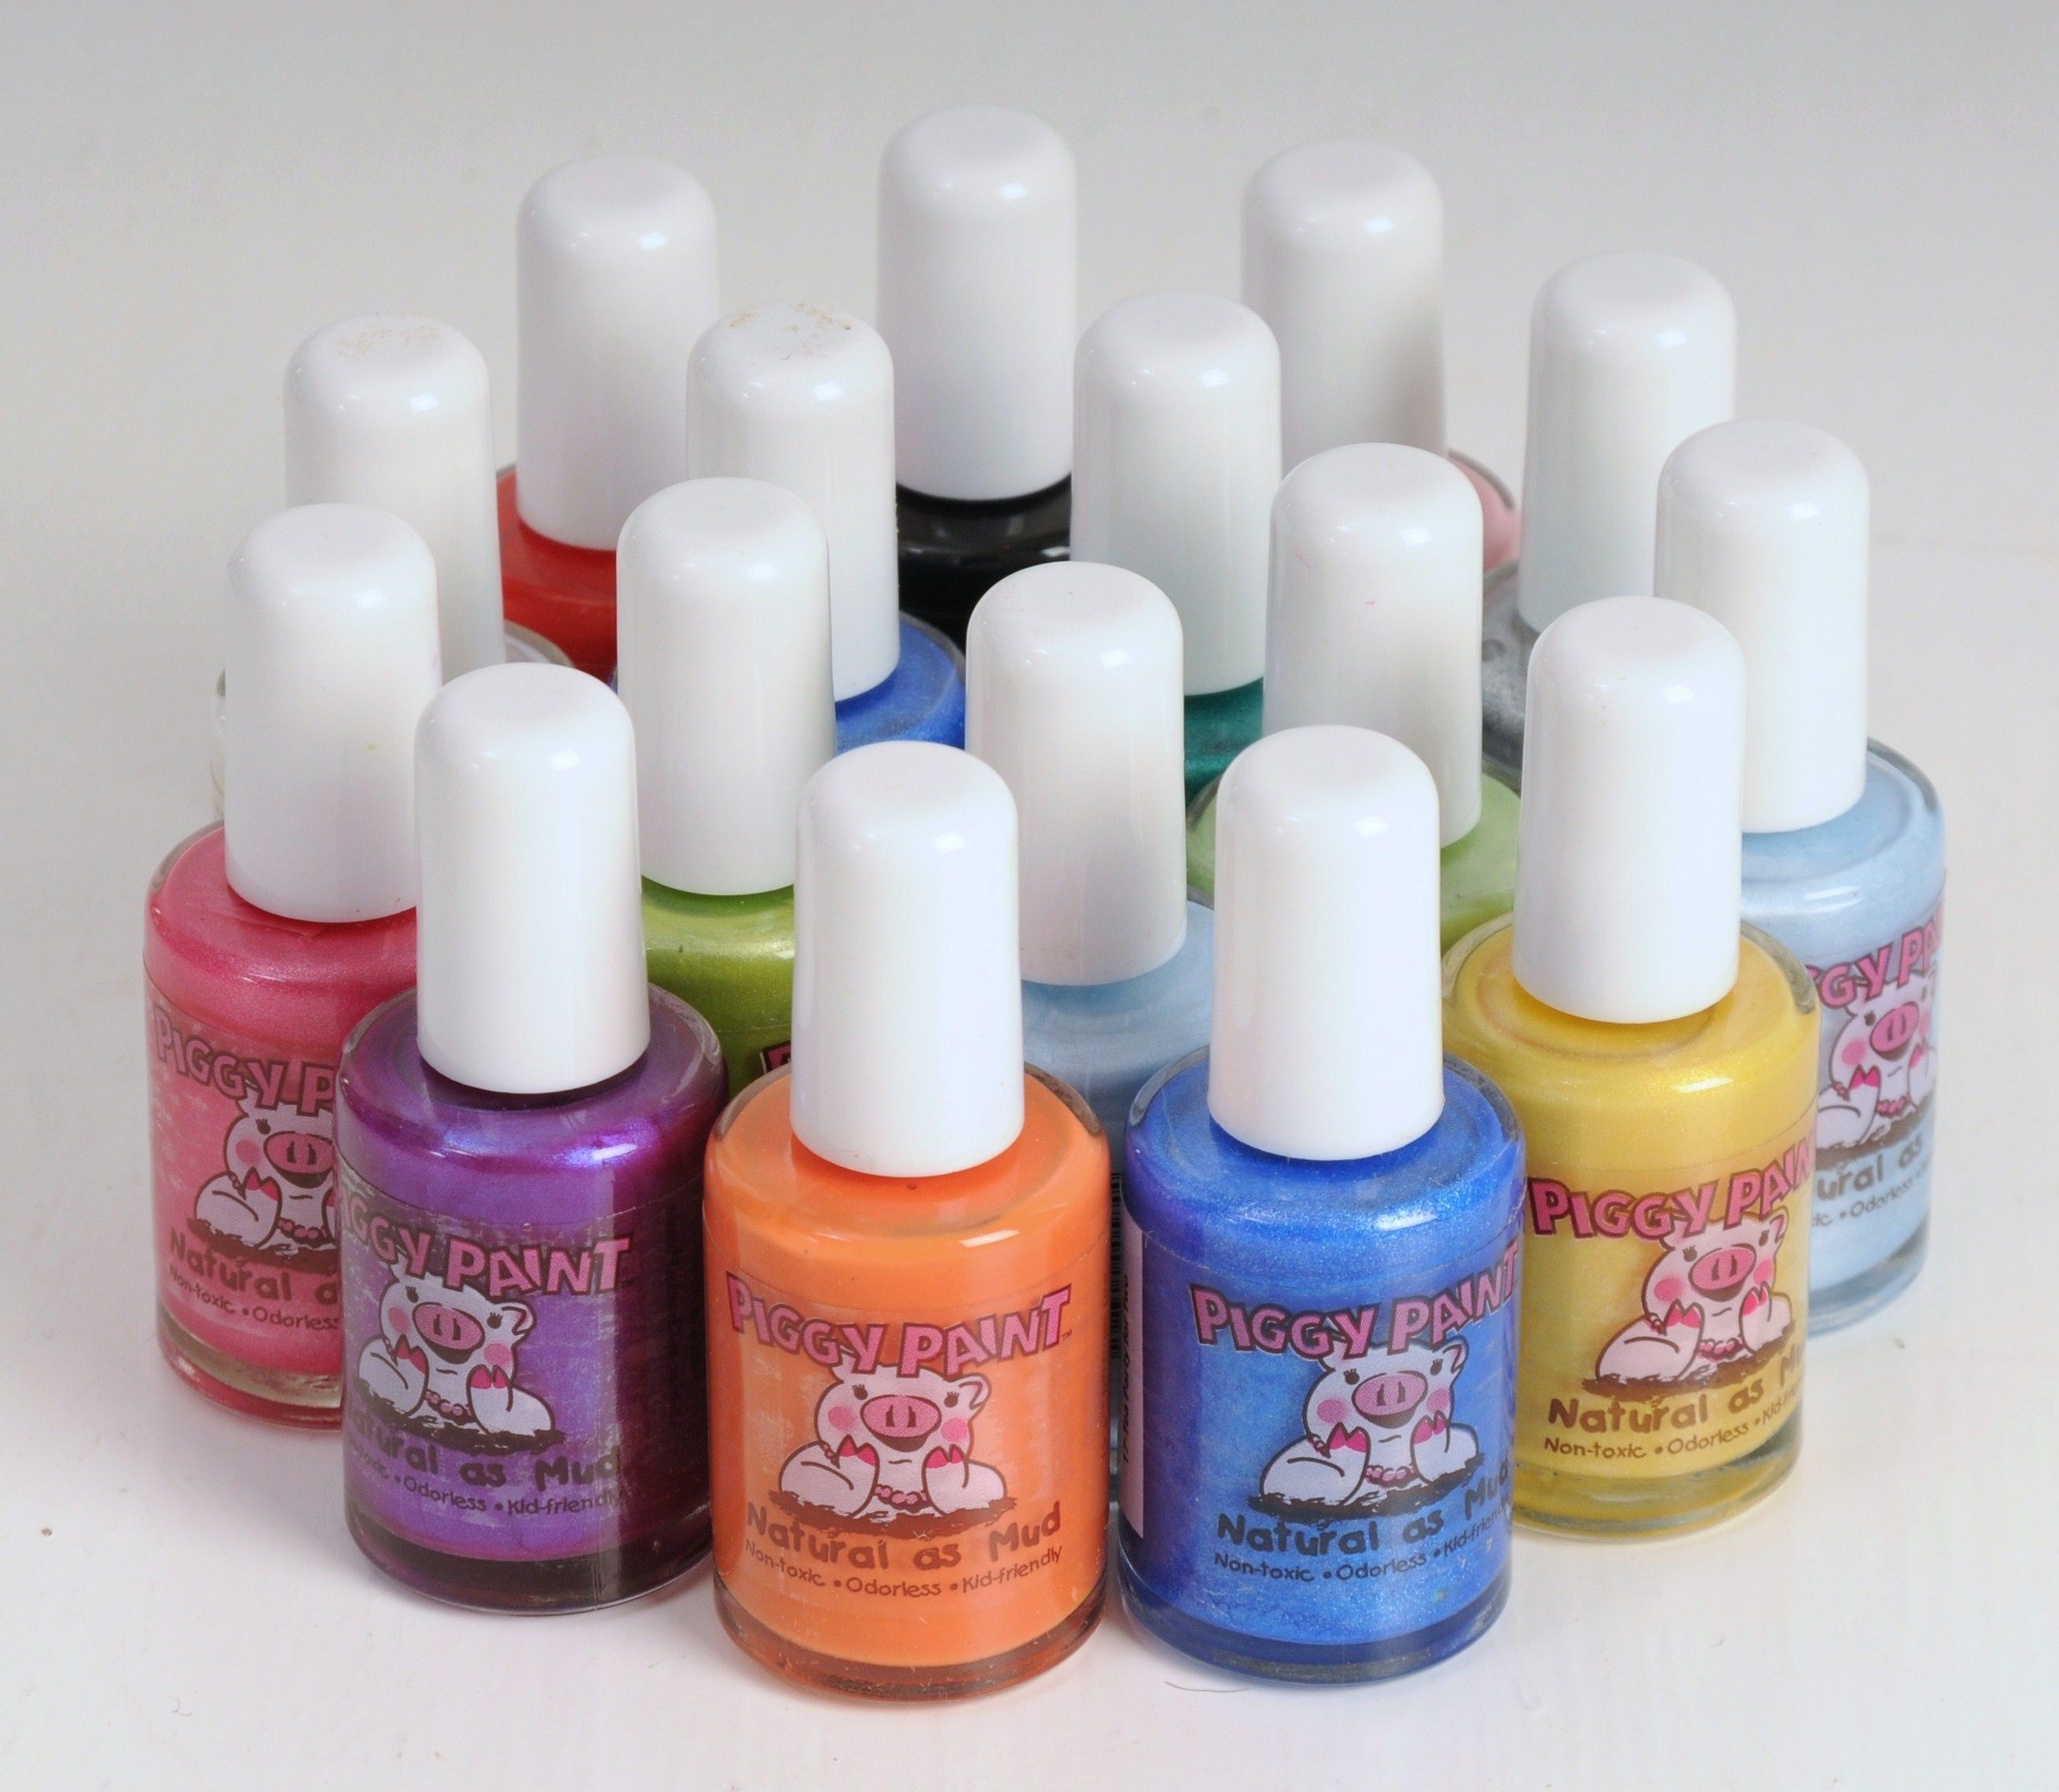 Piggy Paint Nail Polish   Diapers, Babies and Baby safe